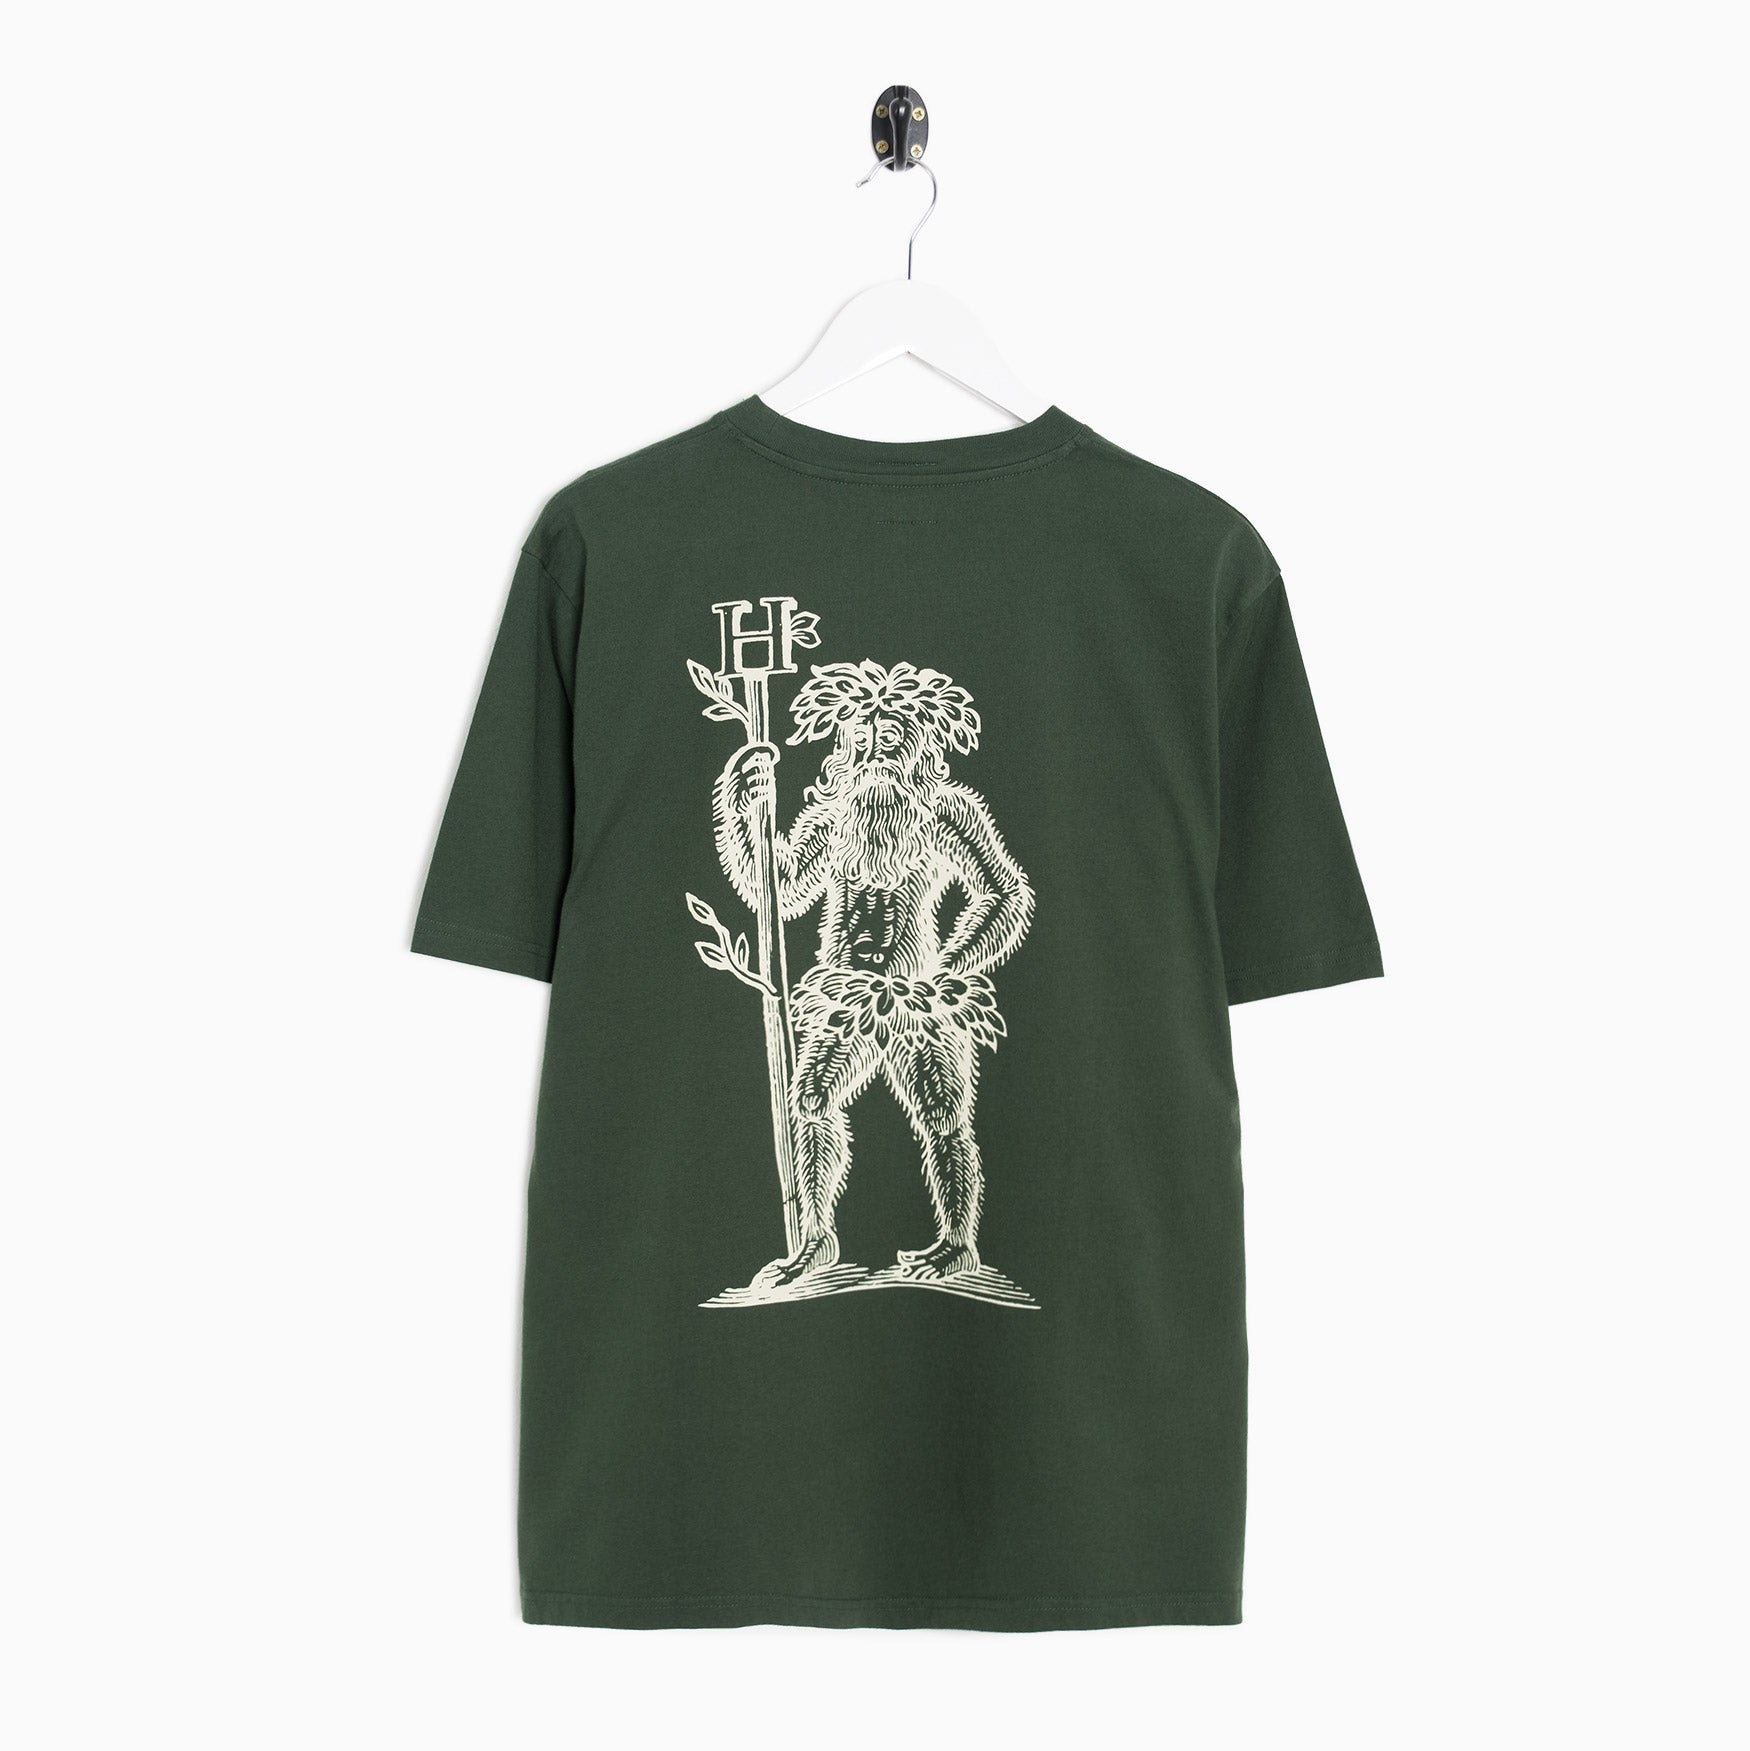 Heresy Green Man T-Shirt - Forest